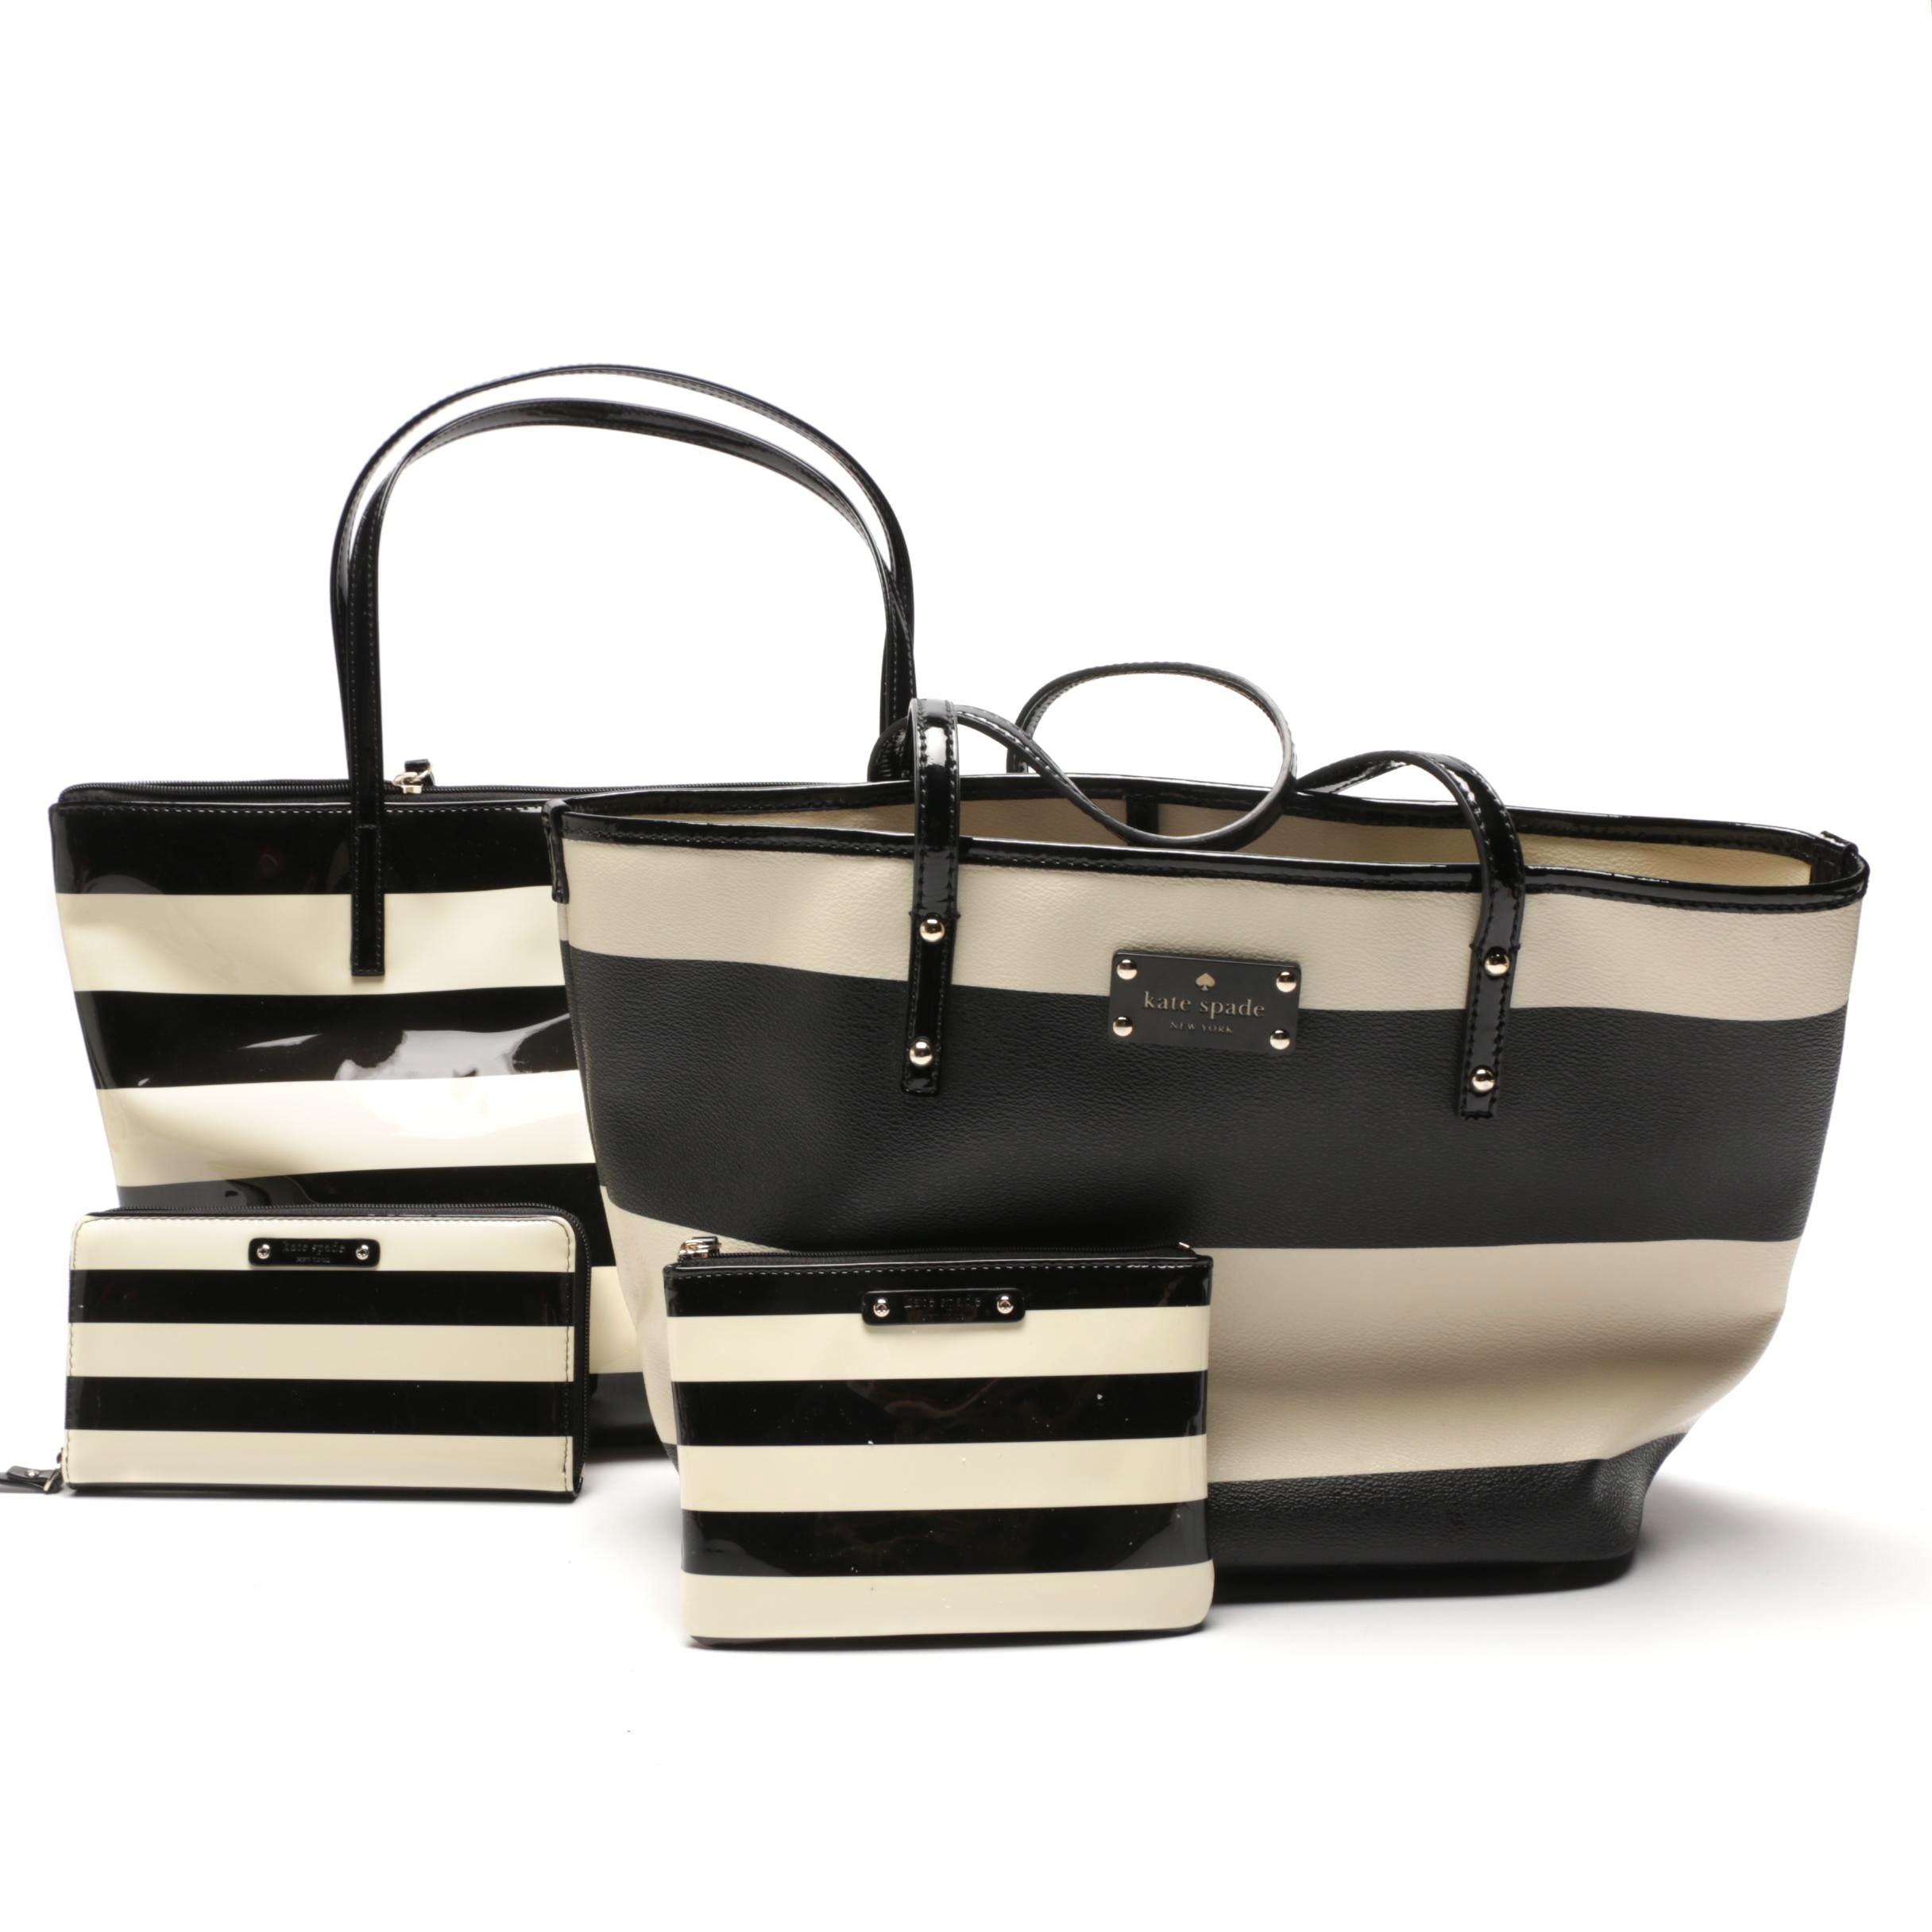 Two Kate Spade New York Black and White Striped Leather Totes